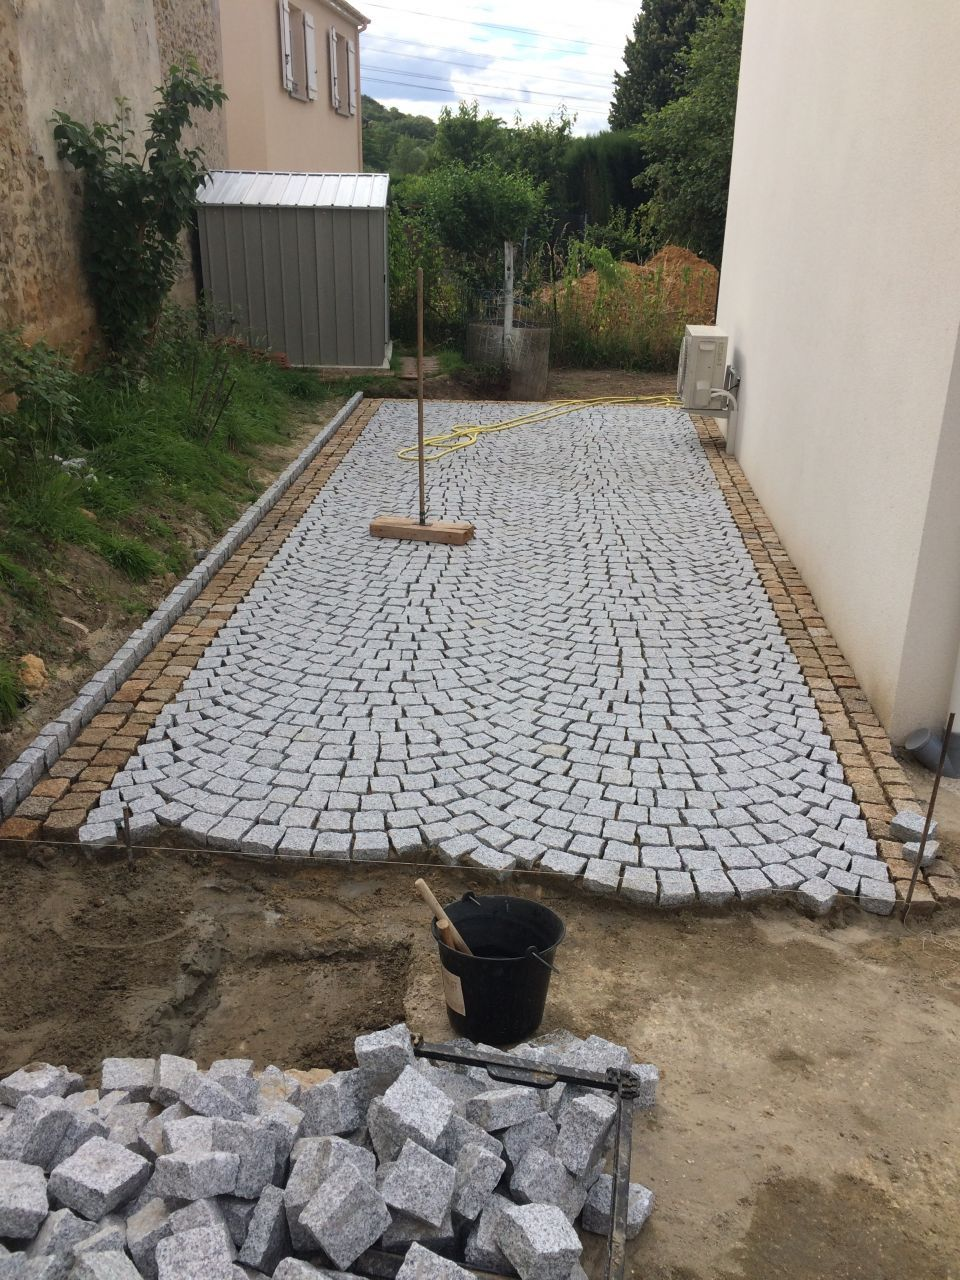 Pose de pav s en granit du portugal paves pinterest for Carrelage portugais